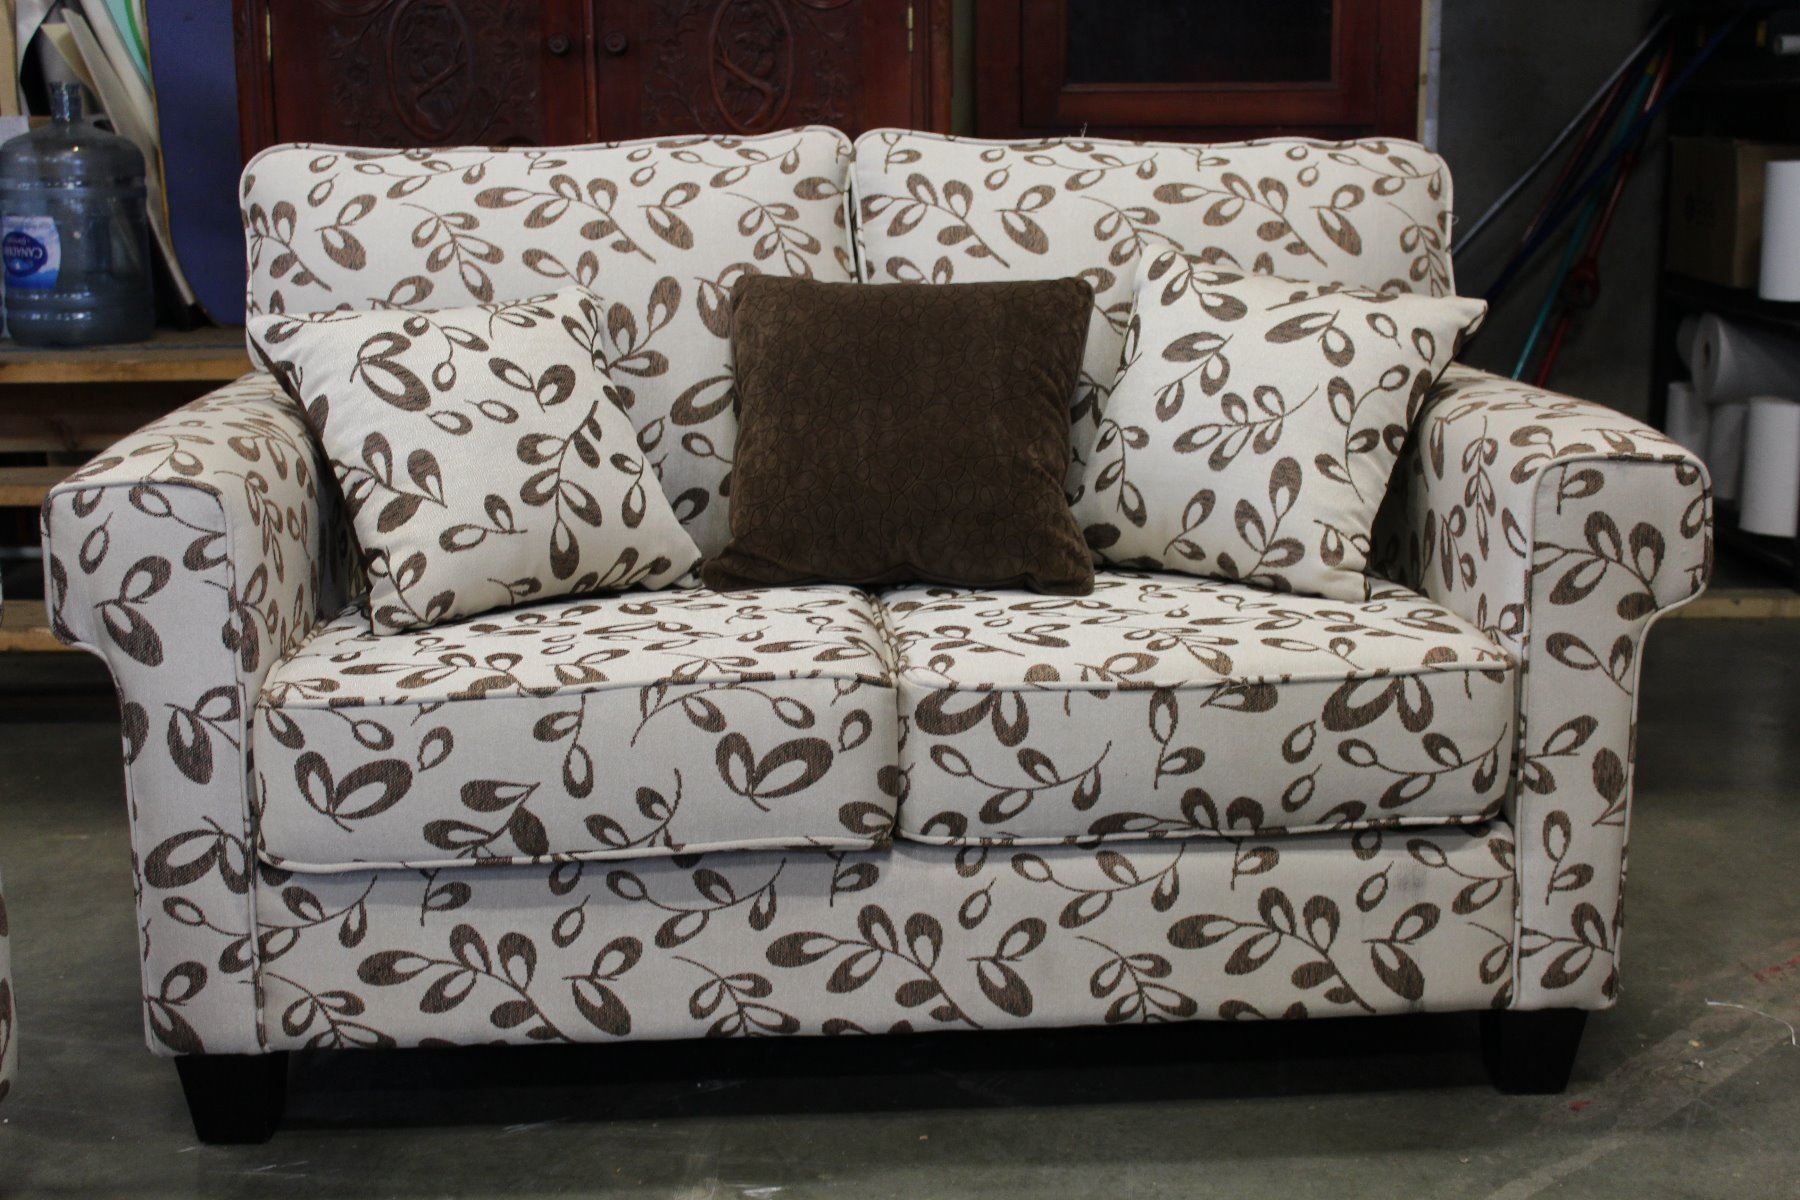 DELUXE DESIGNS MODERN SOFA AND LOVESEAT WITH THROW PILLOWS